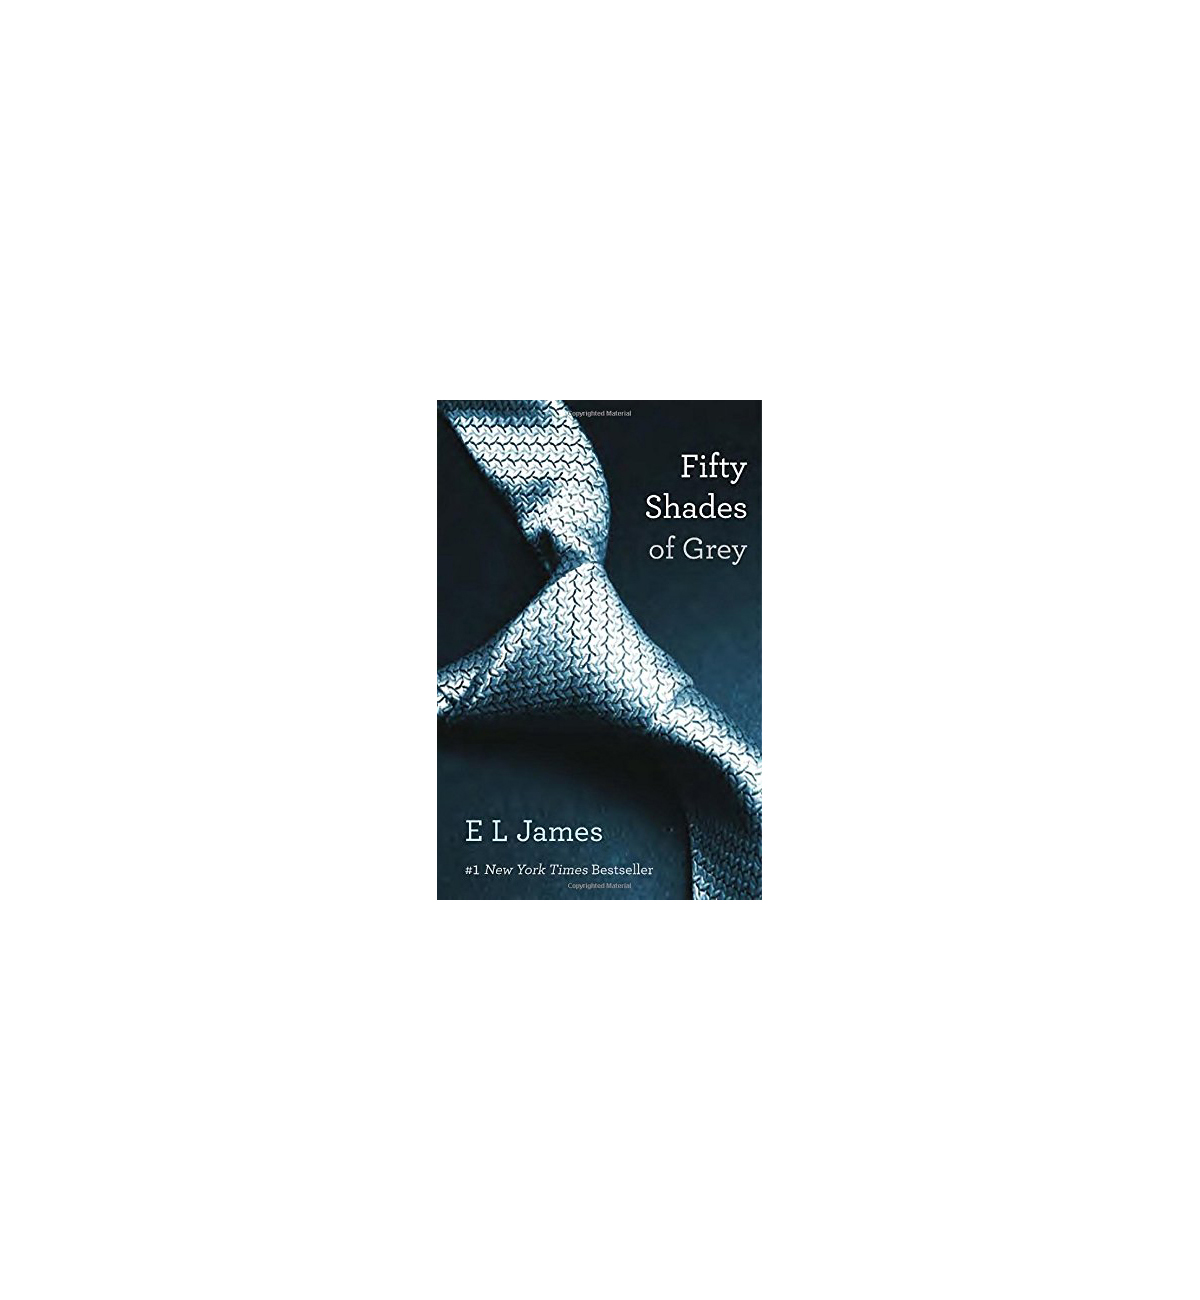 Fifty Shades of Grey, by E.L. James